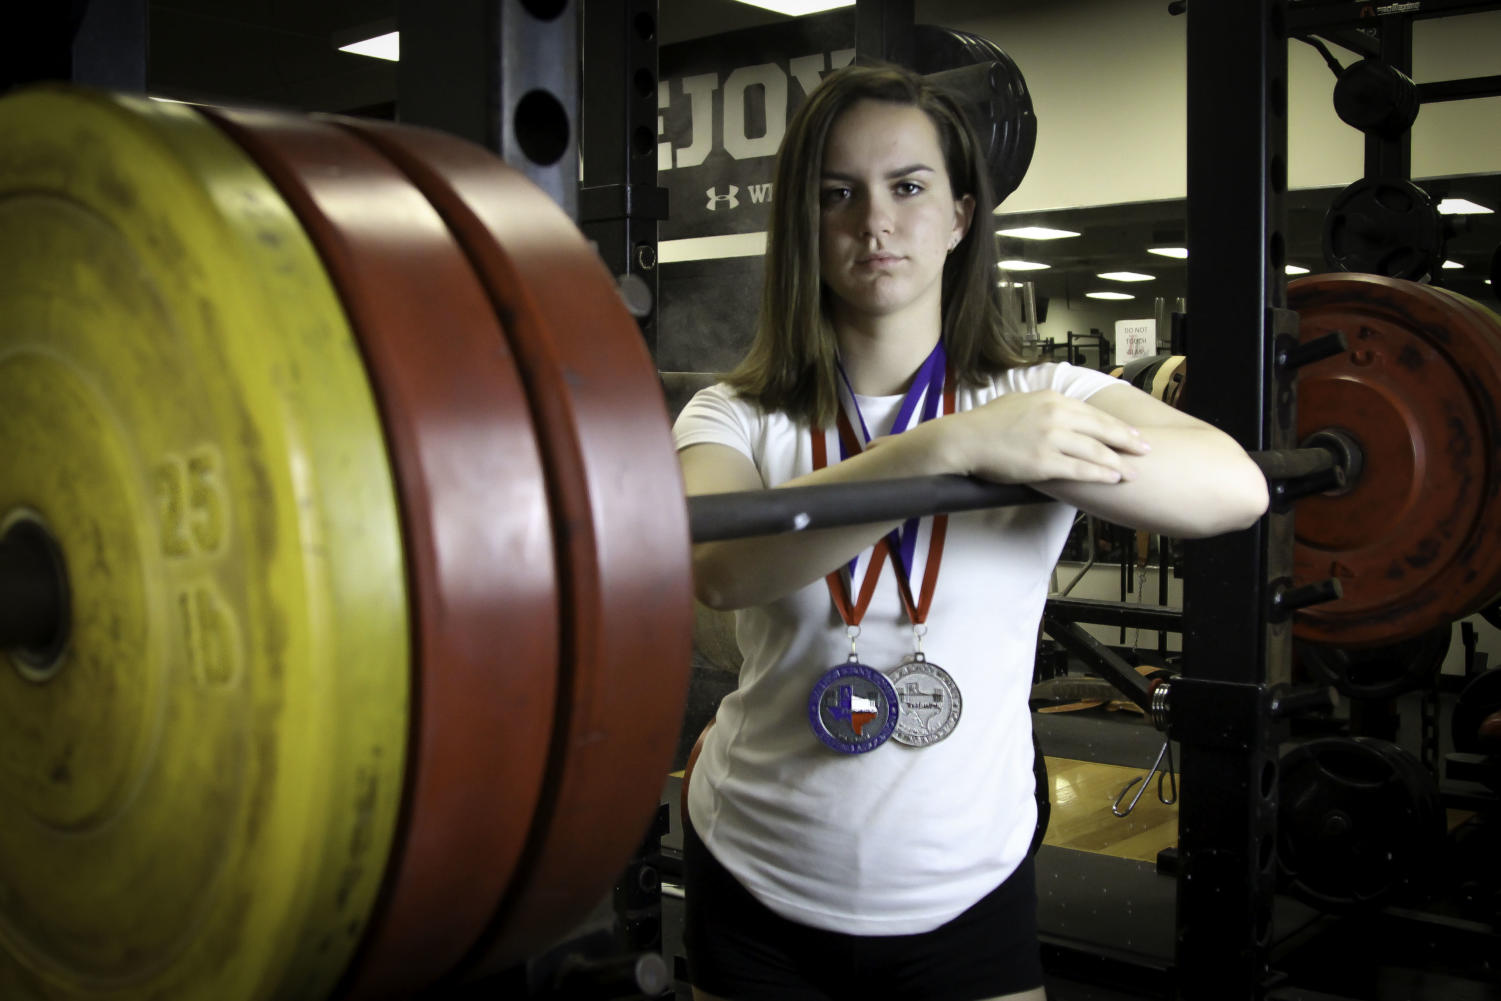 Senior Ally Carraway transitioned from volleyball to powerlifting and became the 5A state record holder in the bench press for her weight class this season.